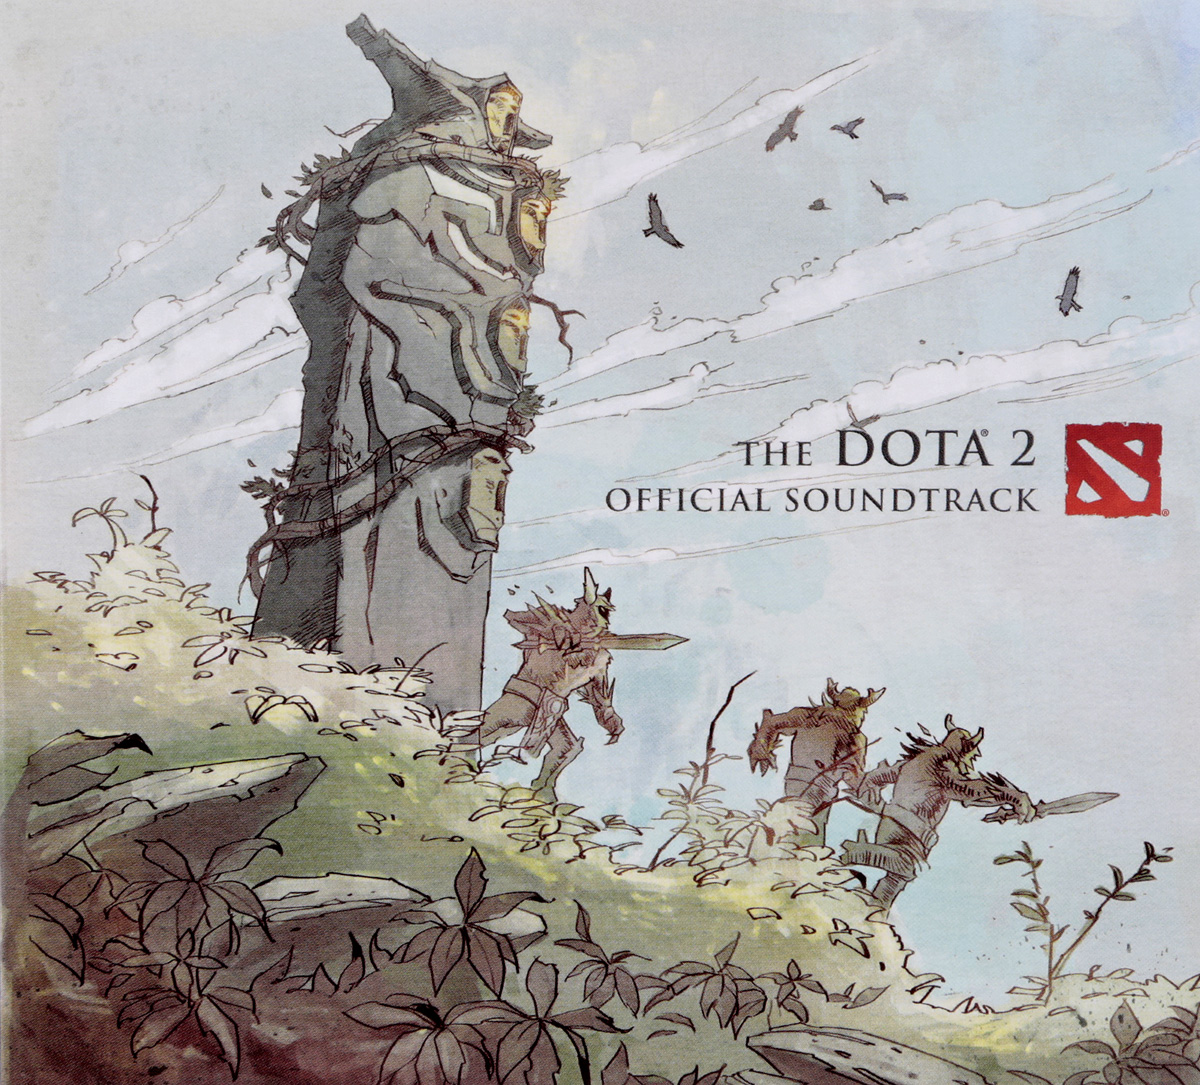 Valve Studio Orchestra. The Dota 2. Official Soundtrack valve studio orchestra the dota 2 official soundtrack lp